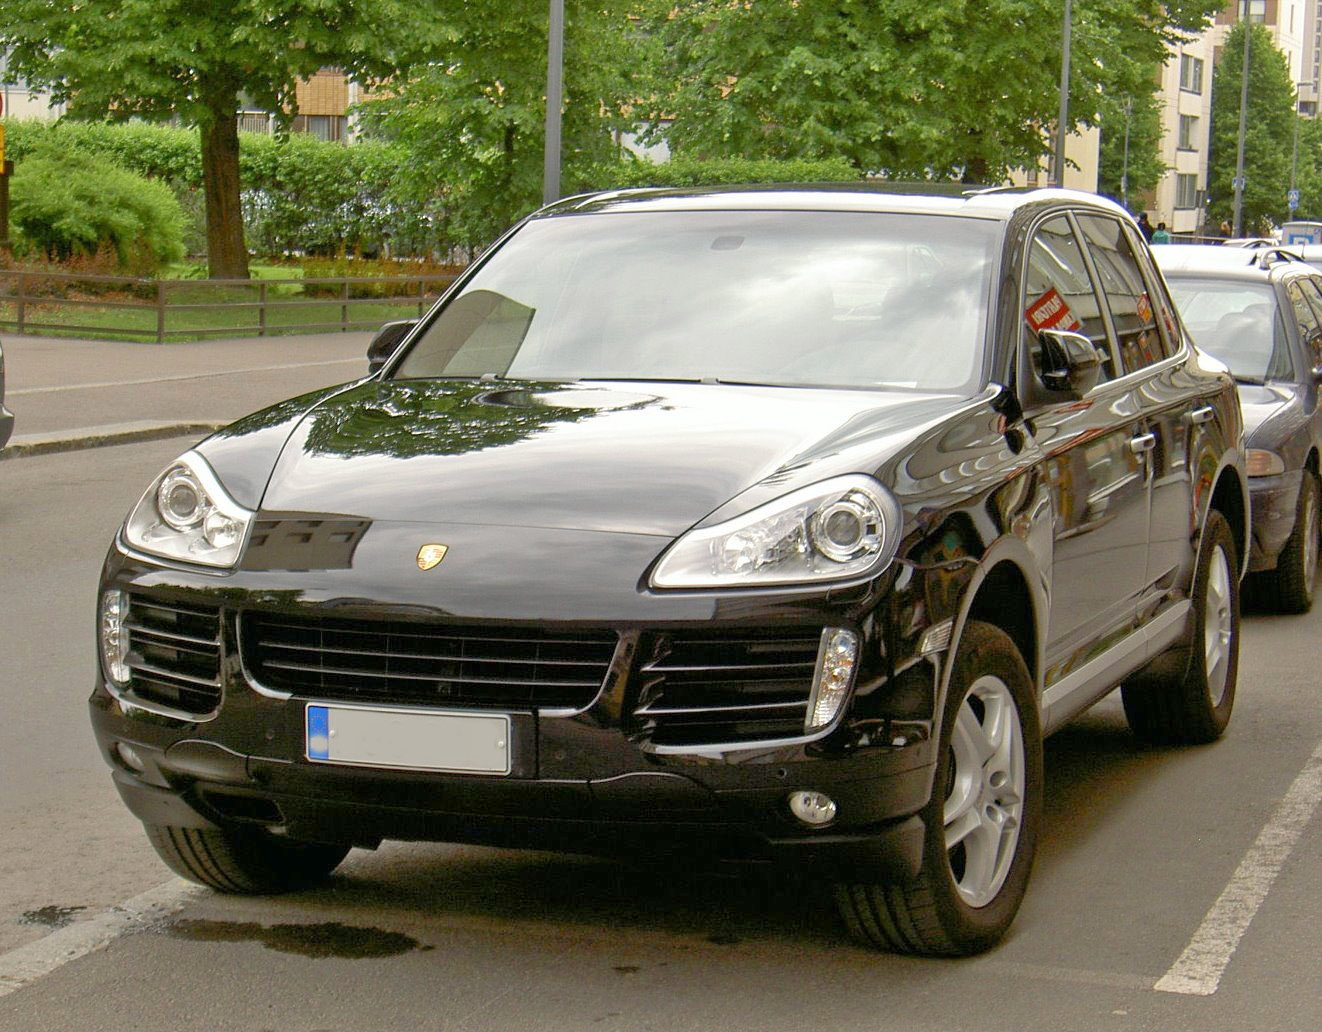 porsche cayenne 2009 review amazing pictures and images look at the car. Black Bedroom Furniture Sets. Home Design Ideas